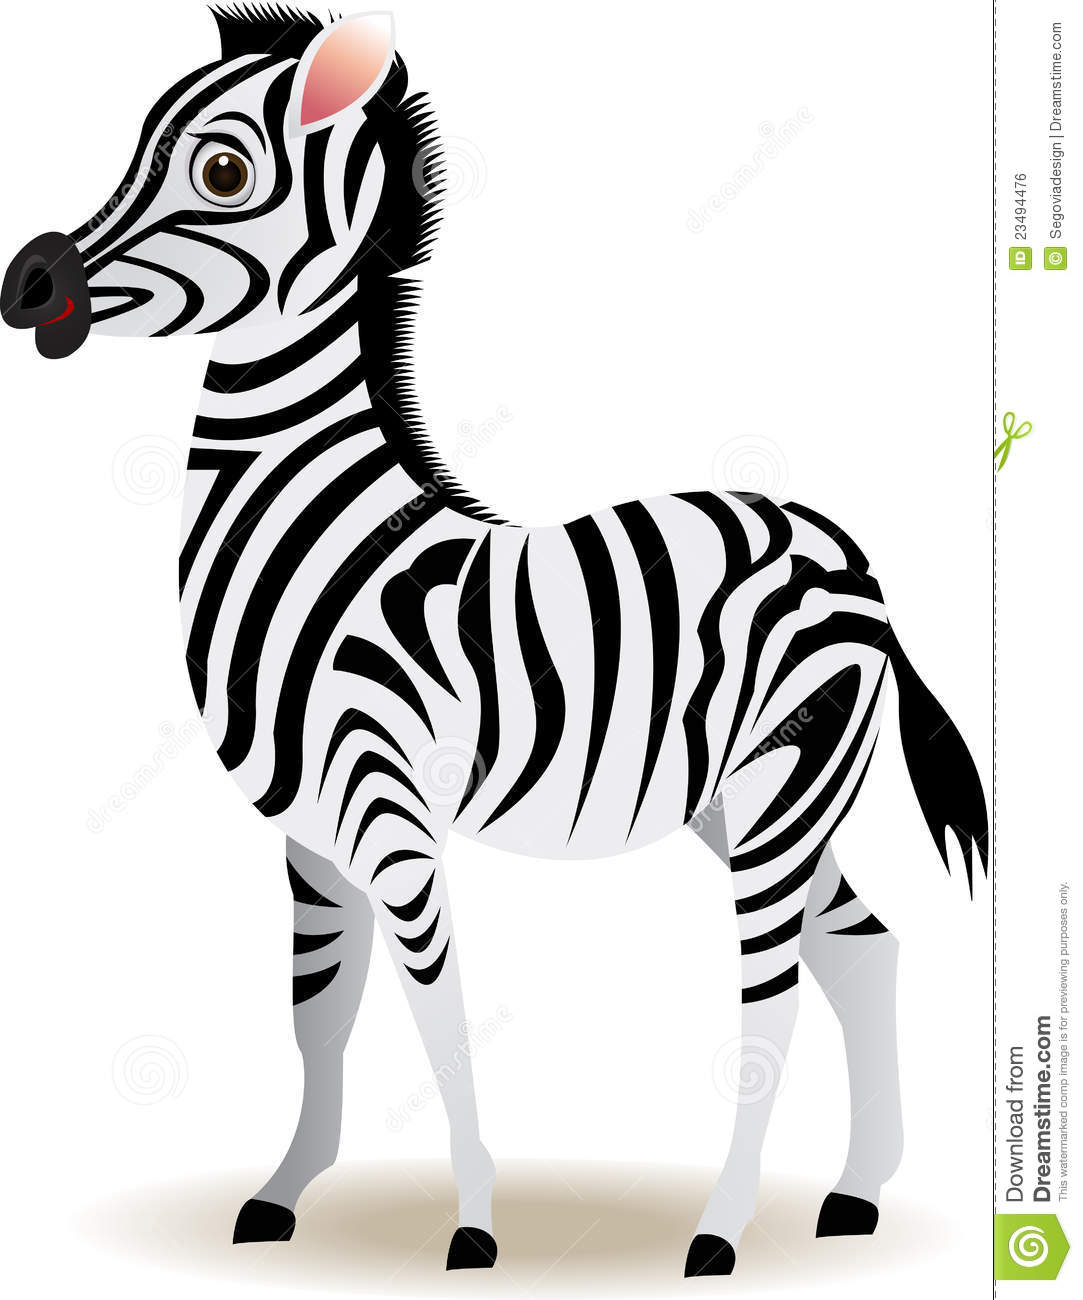 Zebra head cartoon images - photo#17